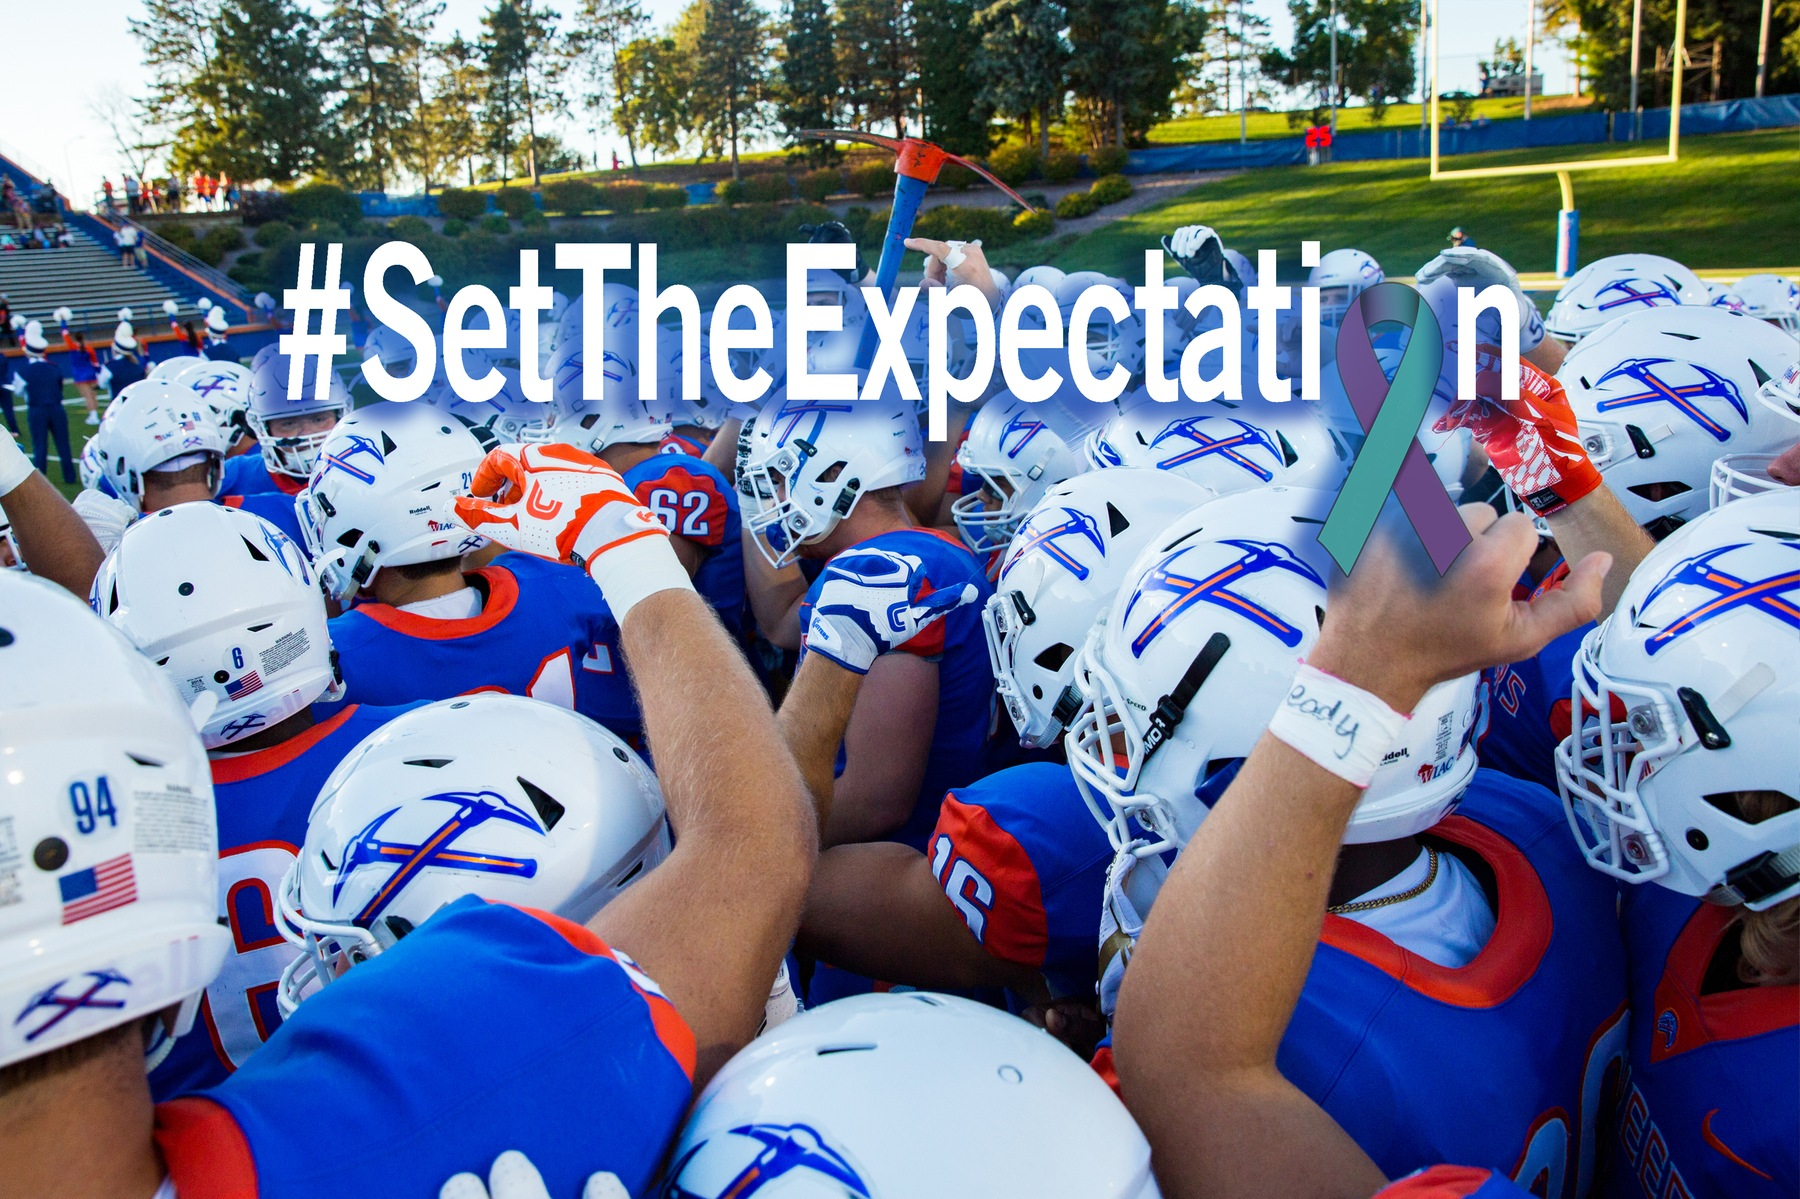 Pioneers host Blugolds in Saturday's #SetTheExpectation game